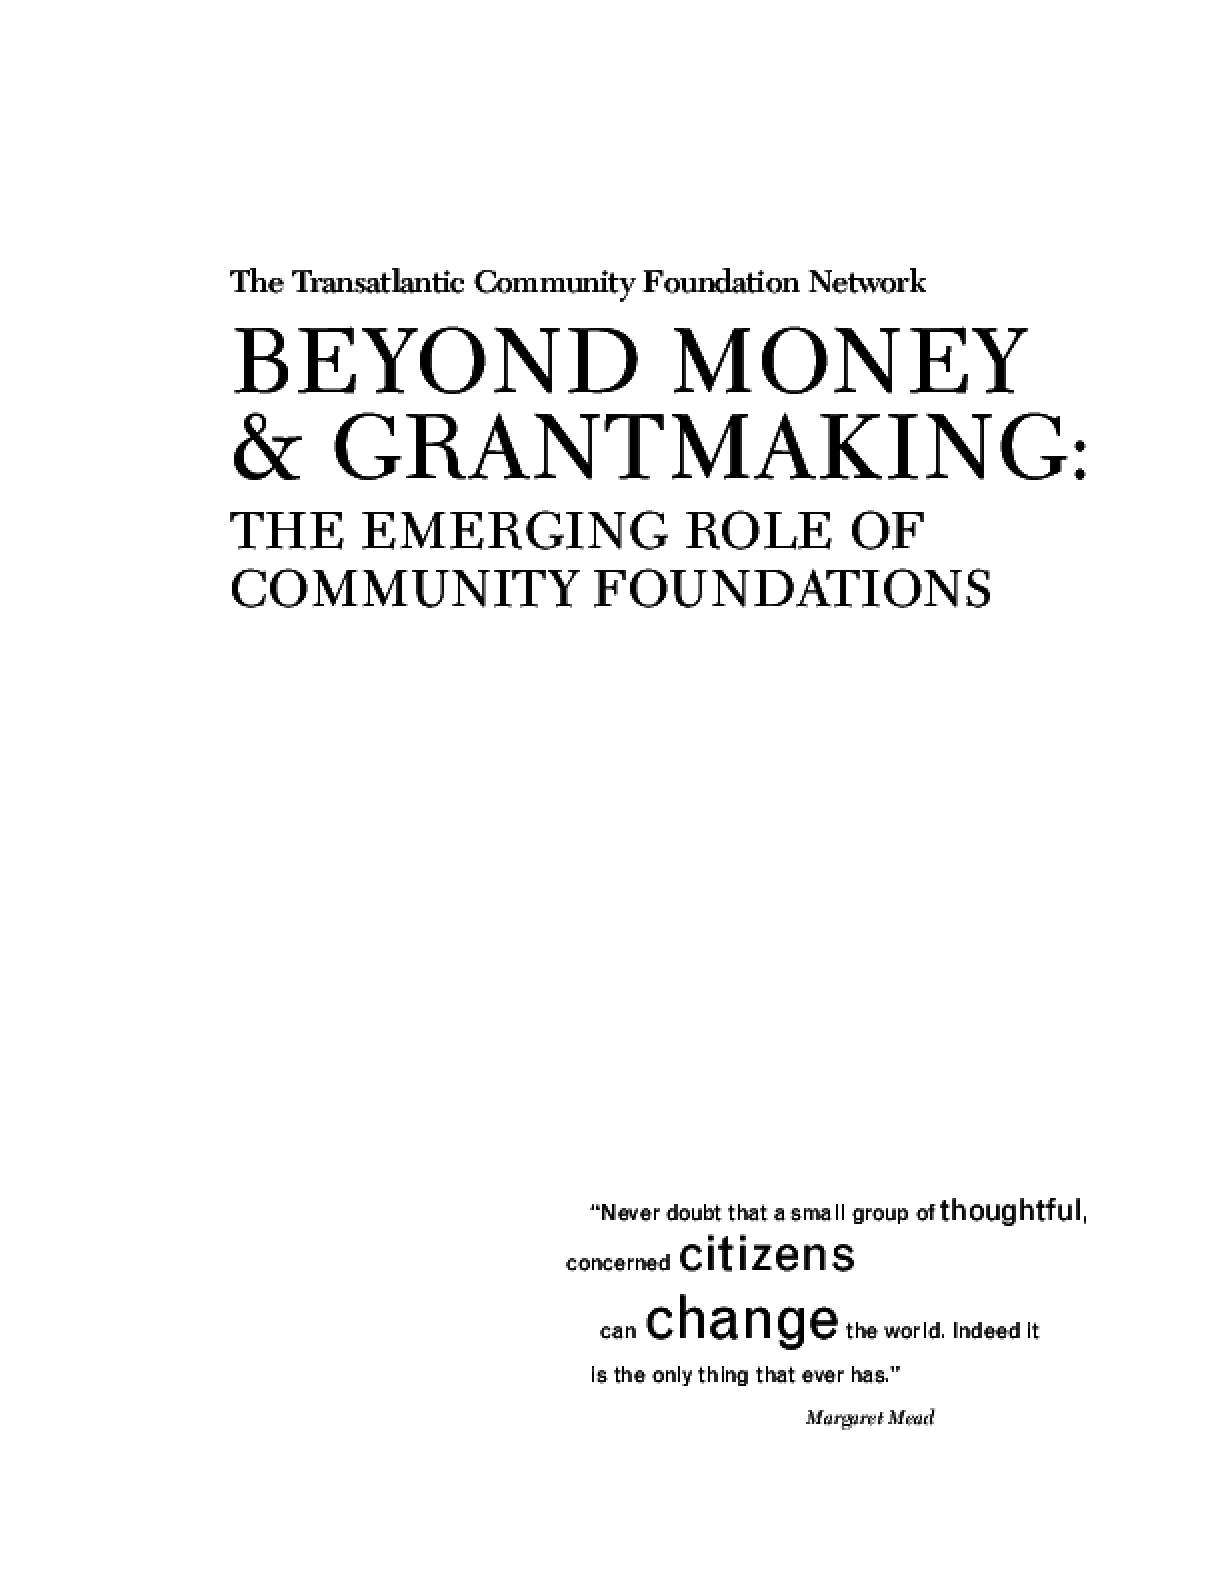 Beyond Money and Grantmaking: The Emerging Role of Community Foundations